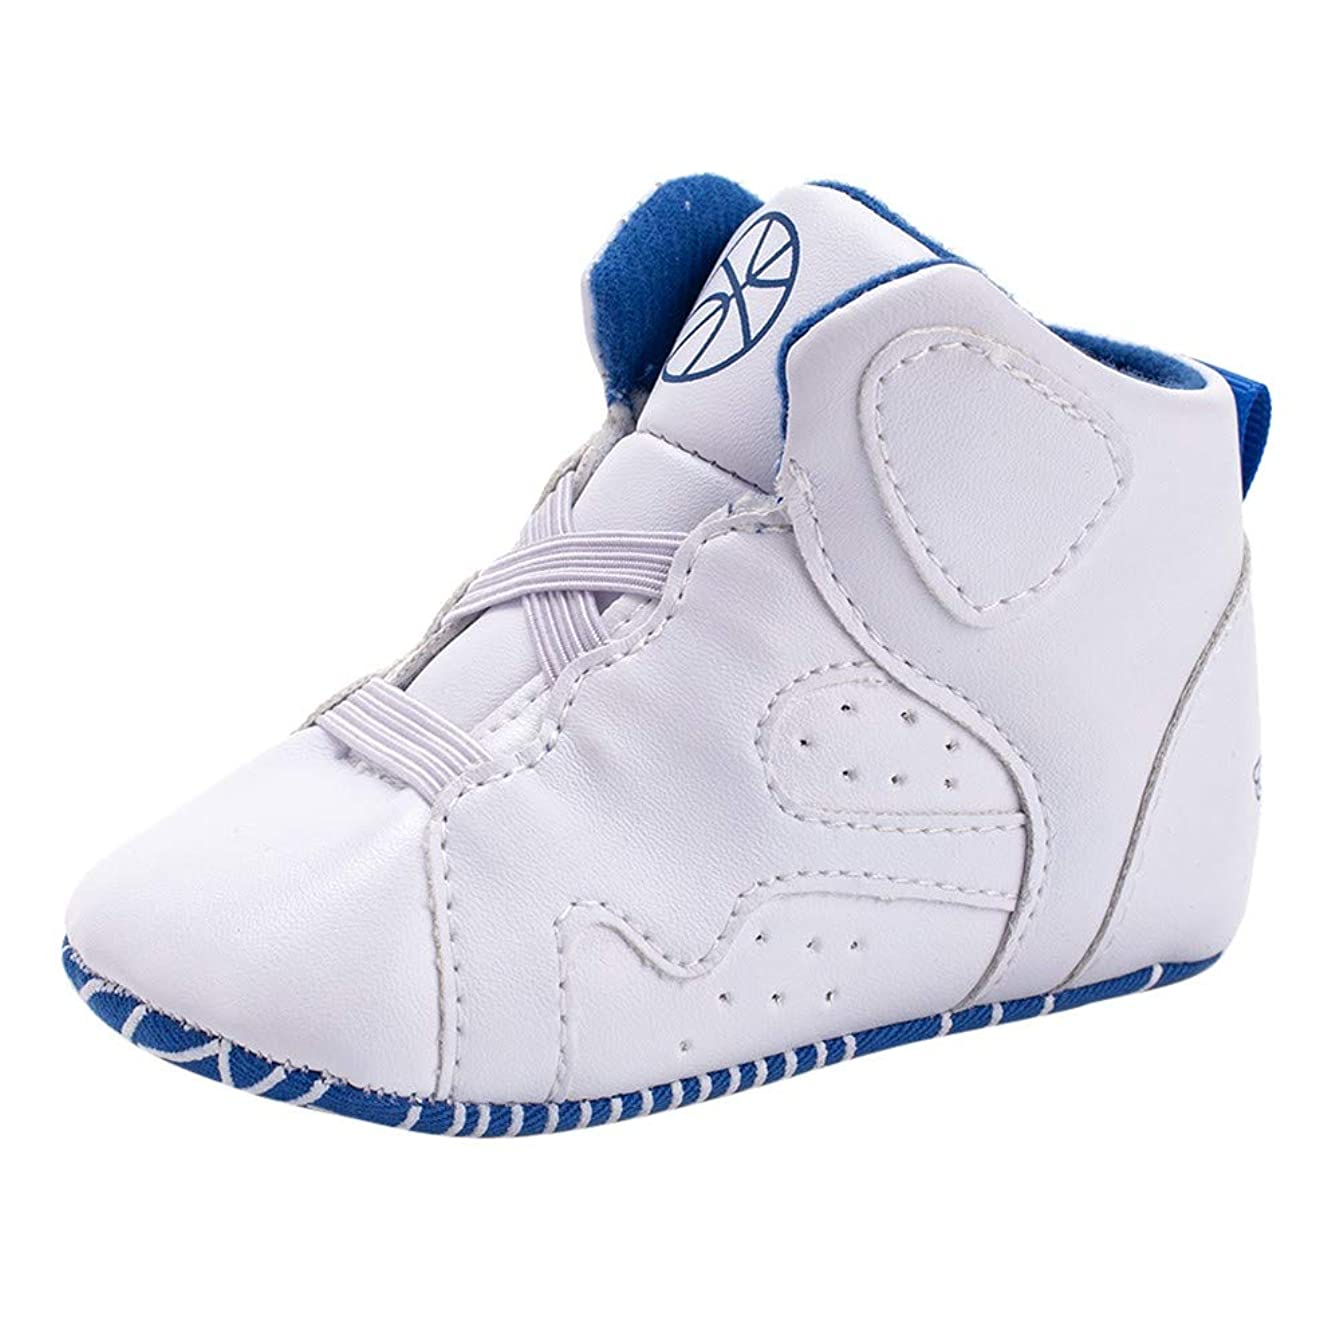 Yezike Newborn Toddler Baby Basketball Shoes Geometric Soft Sole Boot Casual Shoes (12-18 Months, White)